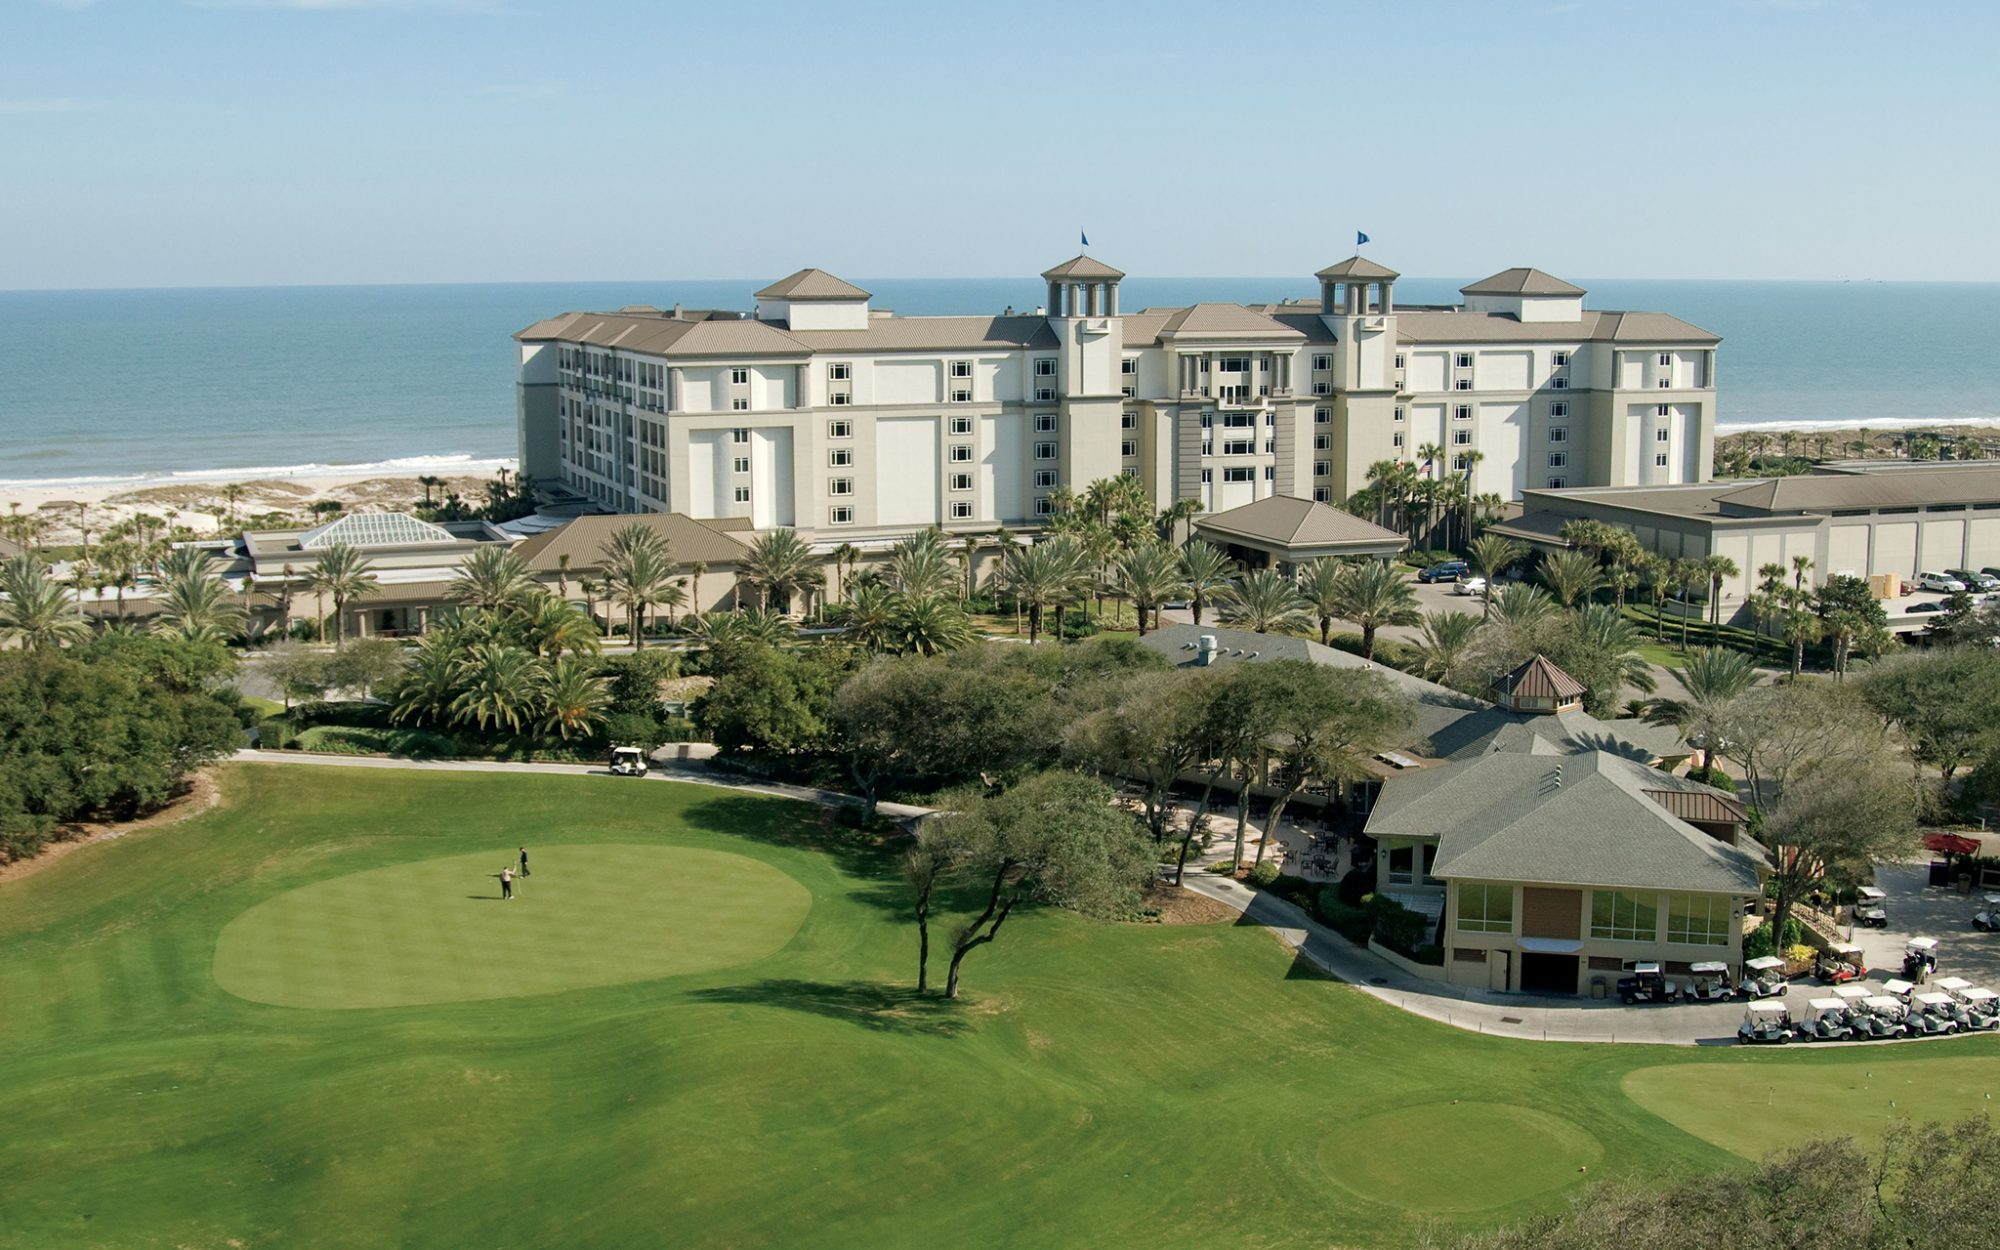 Best Family Beach Hotels: No. 24 Ritz-Carlton, Amelia Island, FL